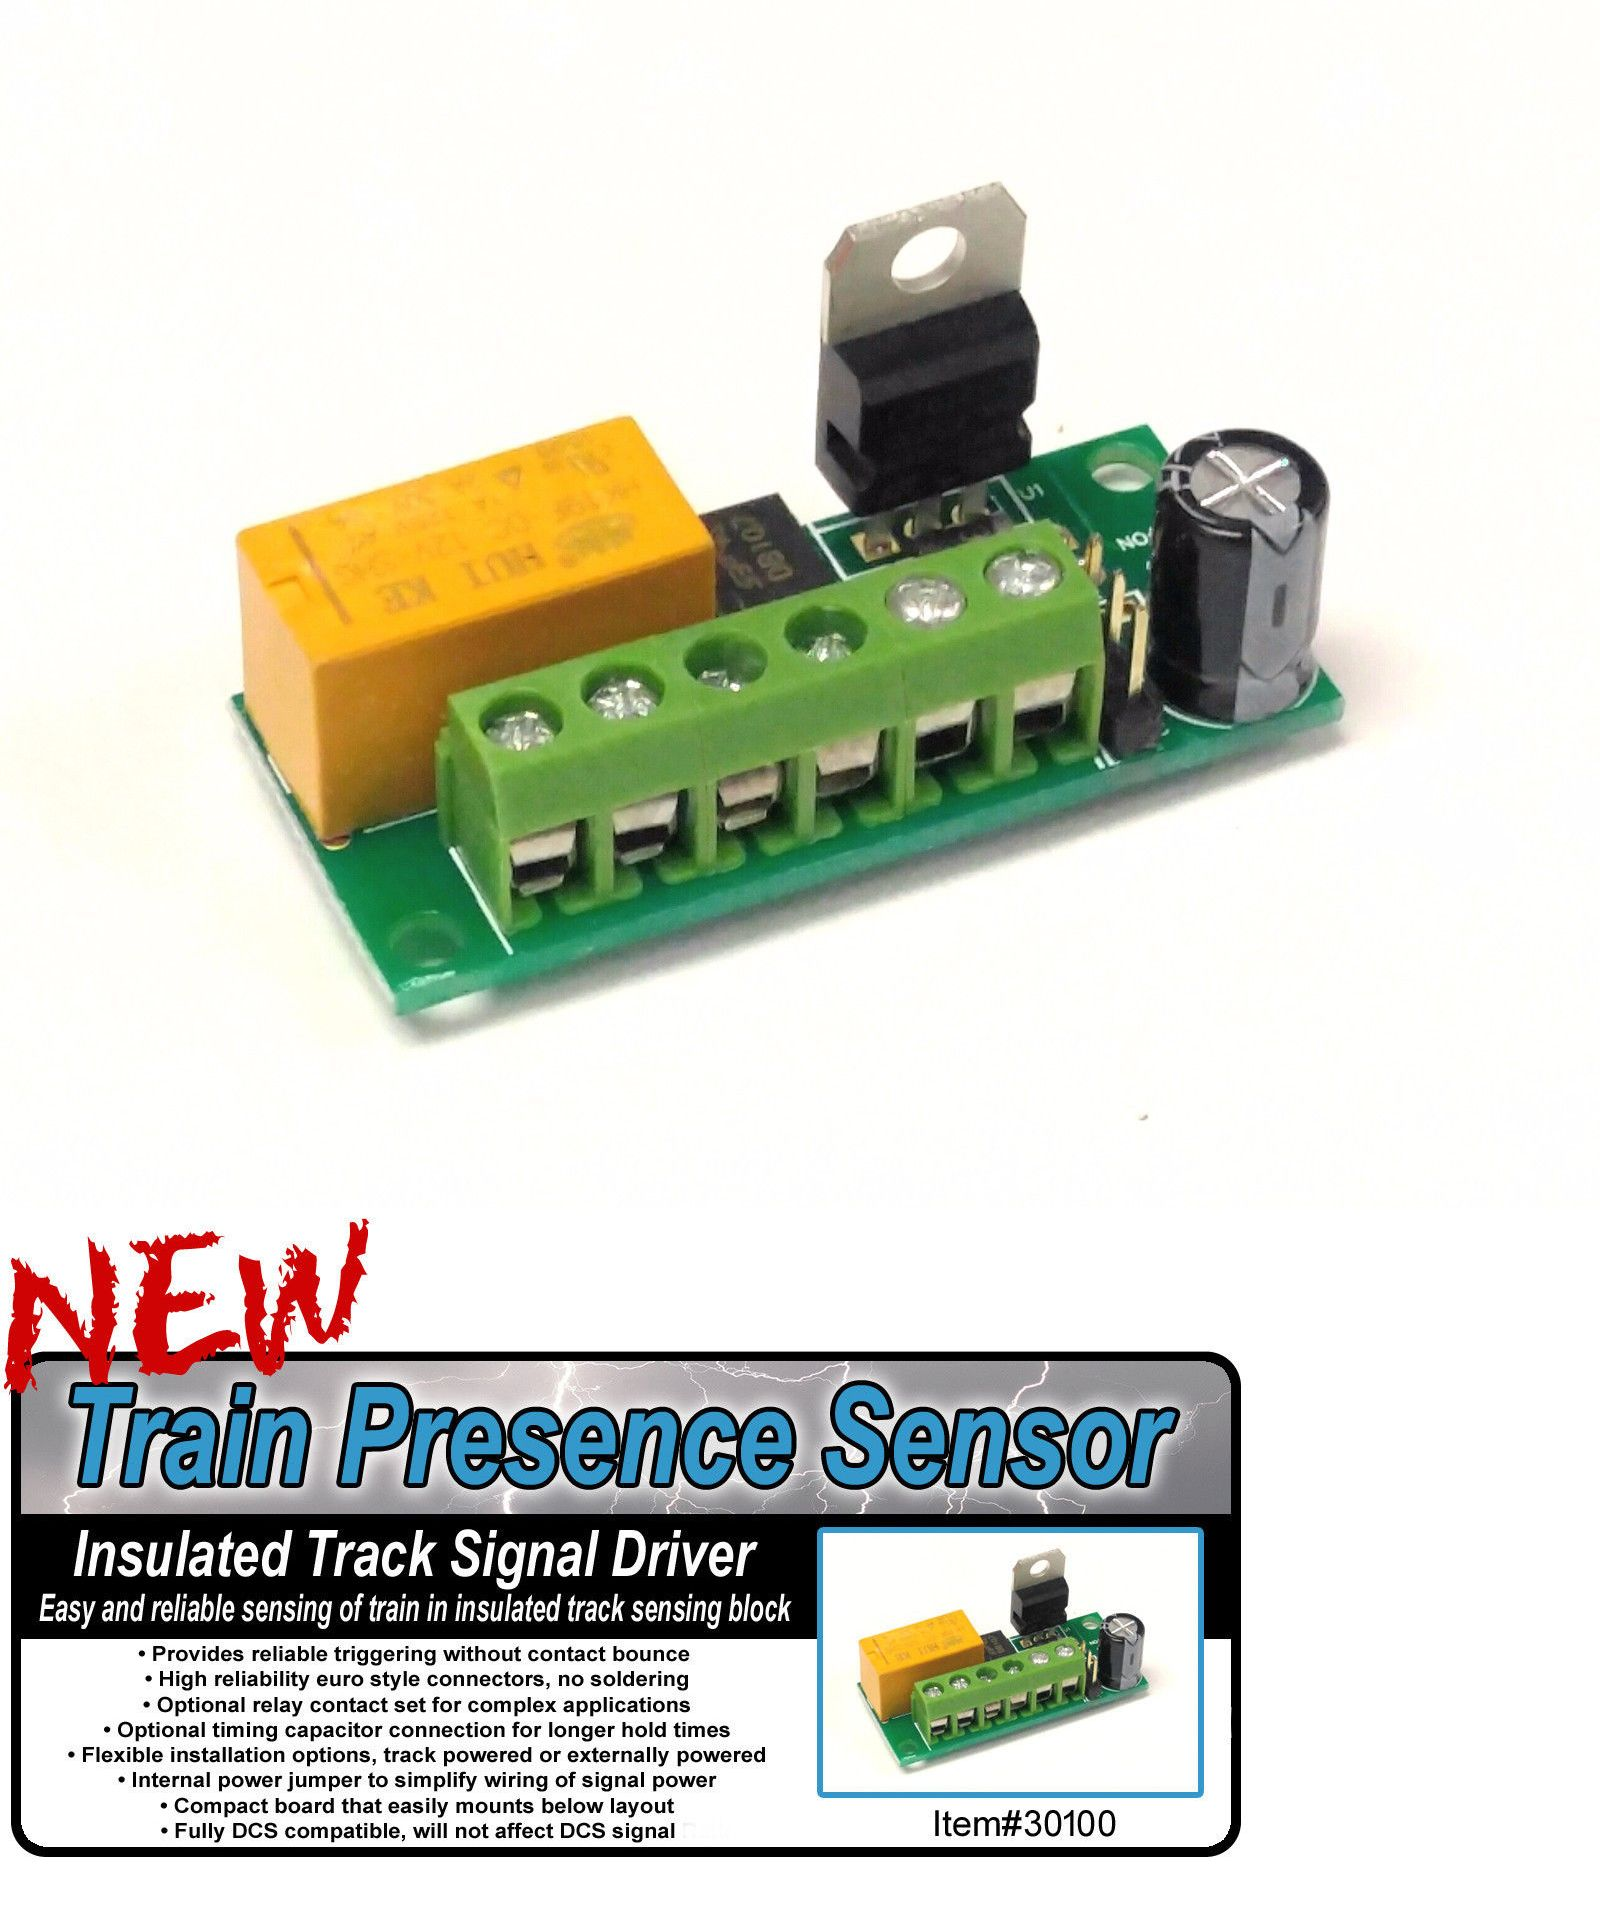 parts and spares 180251 30100 train presence sensor for insulated track o gauge buy it now only 29 99 on ebay parts spares train presence  [ 1600 x 1914 Pixel ]